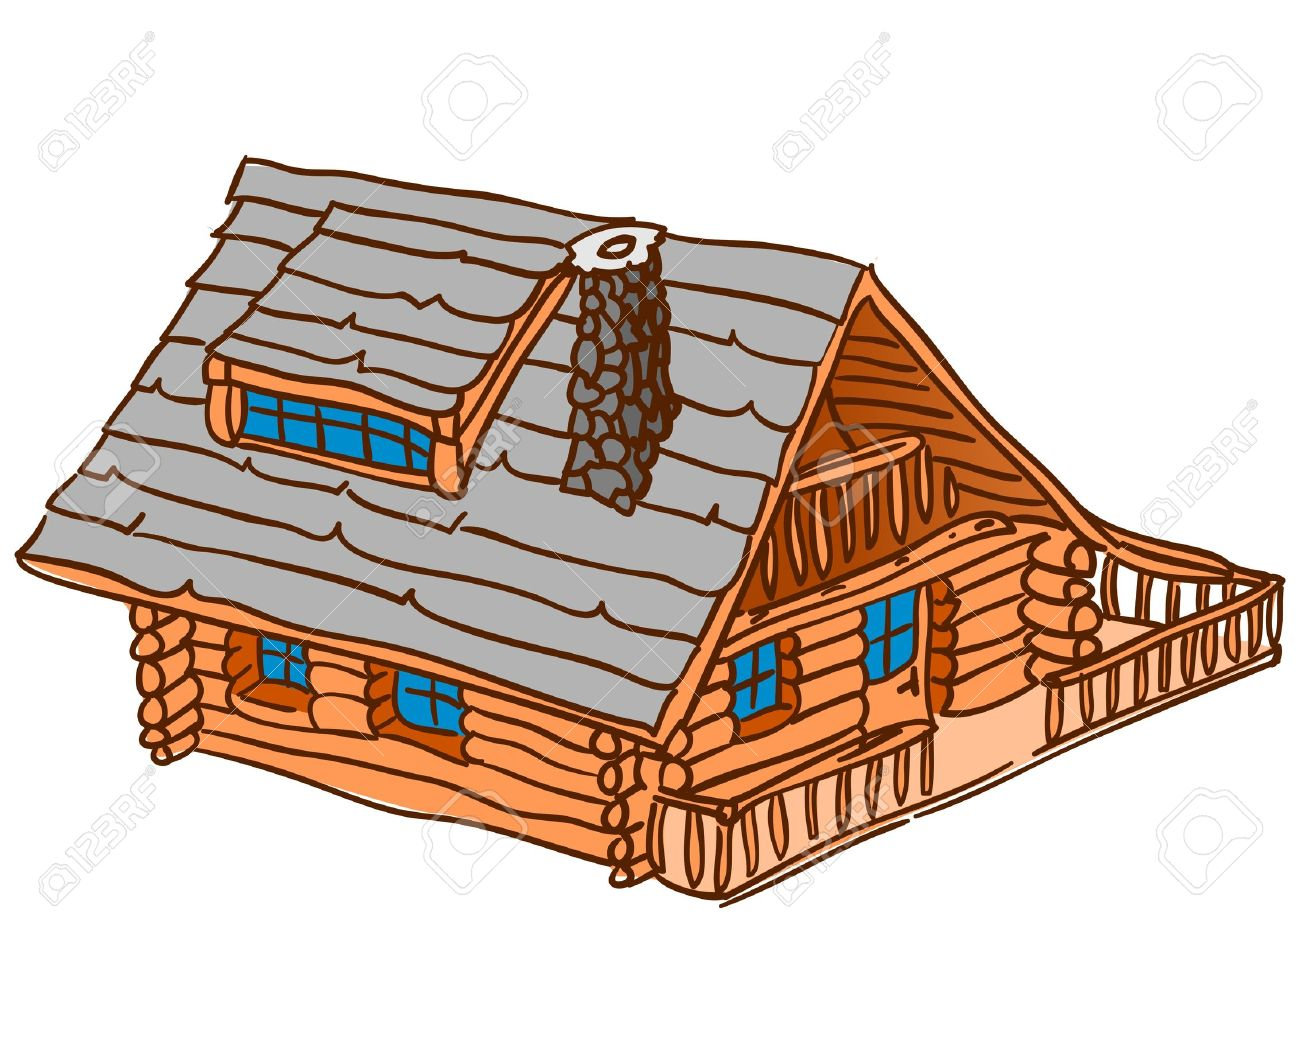 Isolated Wooden Cabin Stock Vector - 15782467